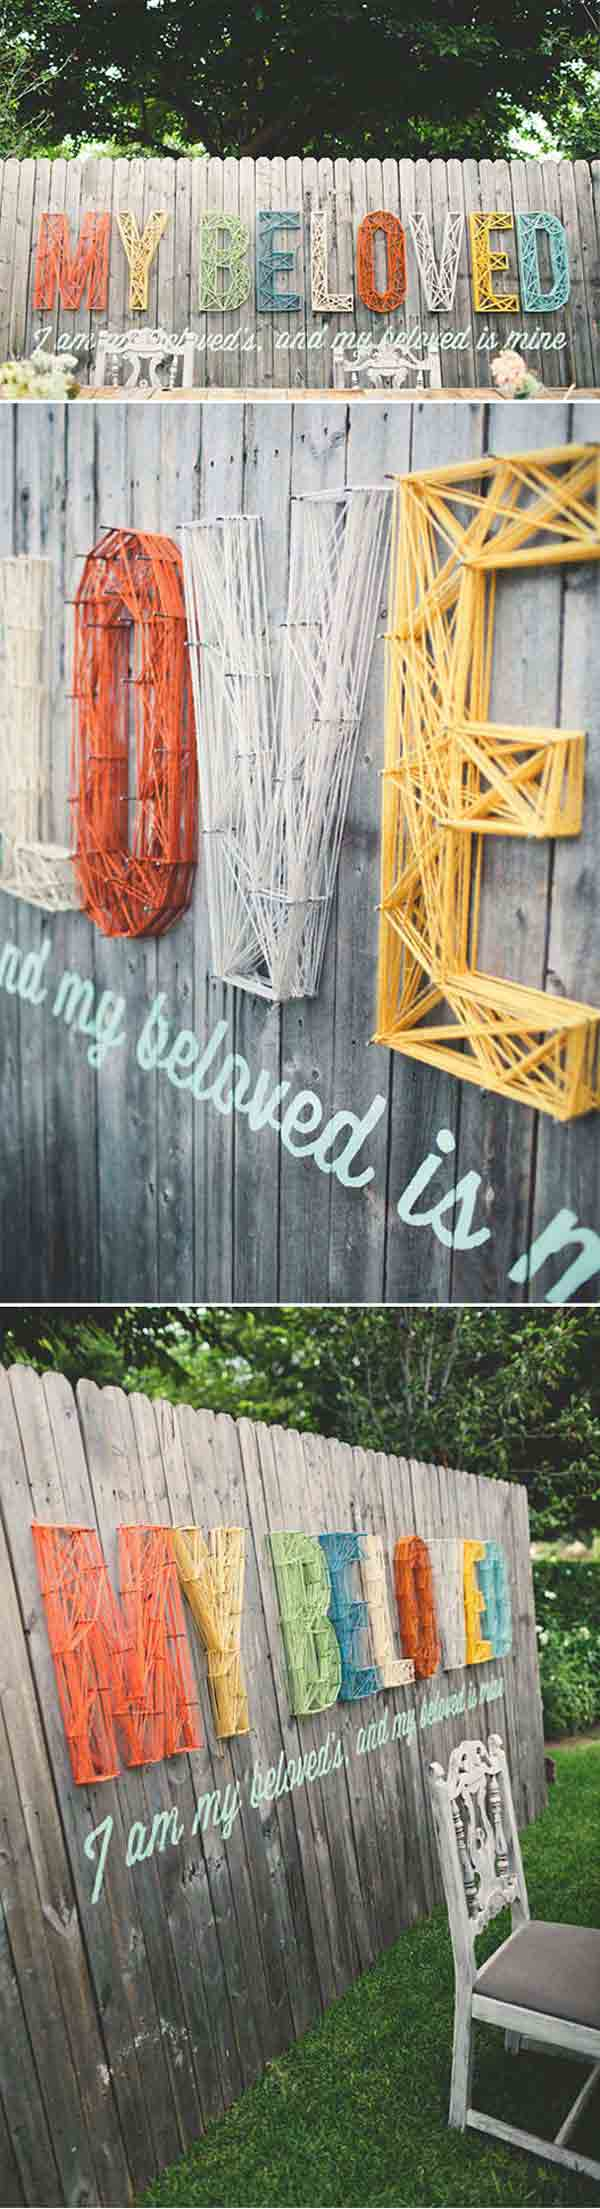 Top 23 Surprising DIY Ideas To Decorate Your Garden Fence ... on Backyard Wall Decor Ideas id=15203